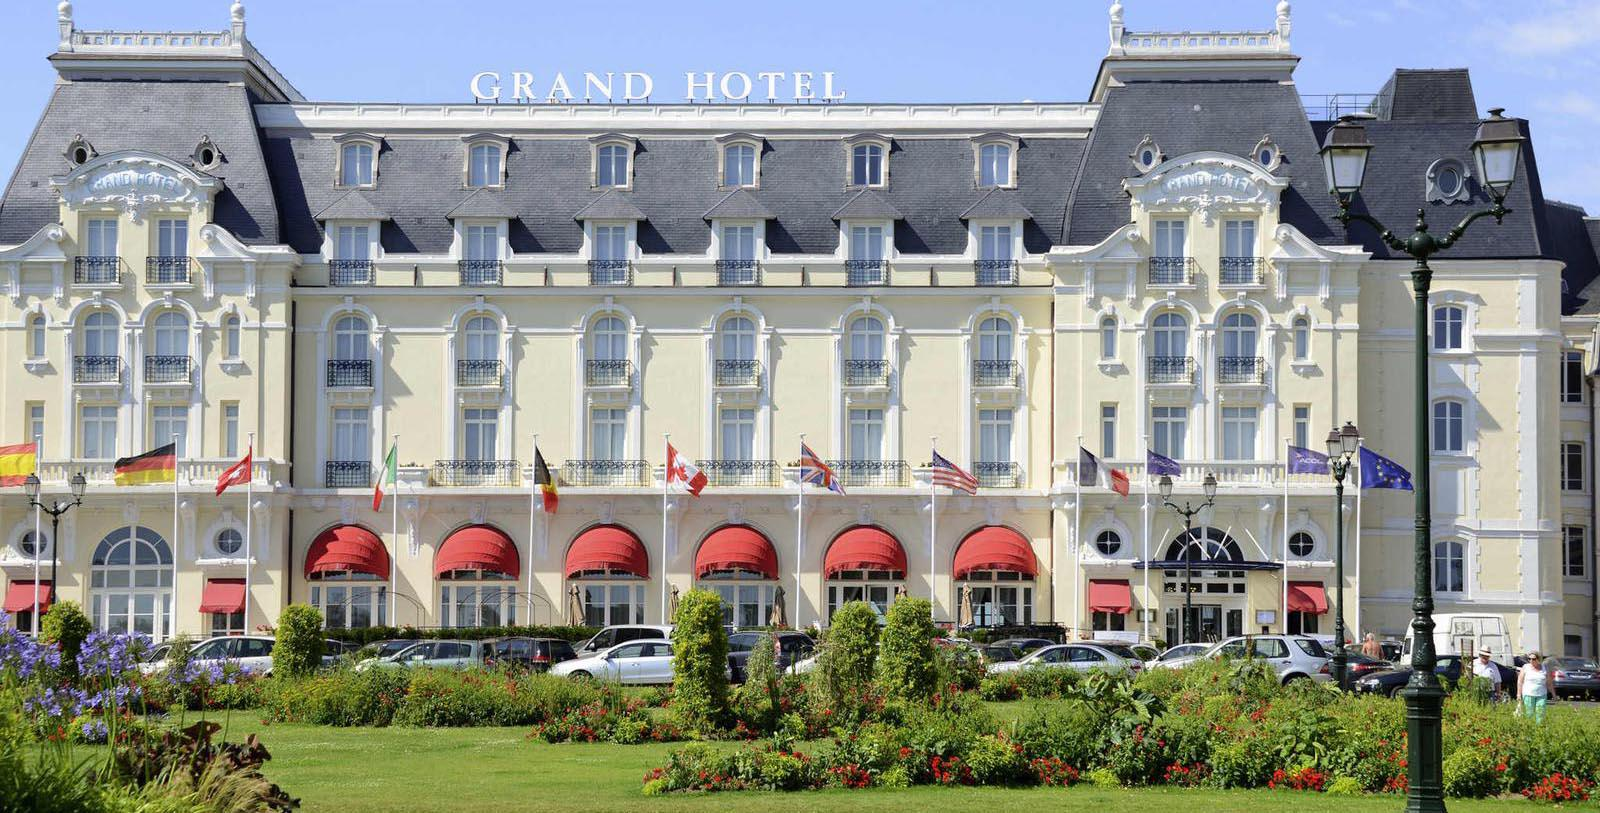 Image of Hotel Exterior Le Grand Hôtel Cabourg - MGallery by Sofitel, 1907, Member of Historic Hotels Worldwide, in Cabourg, France, Overview